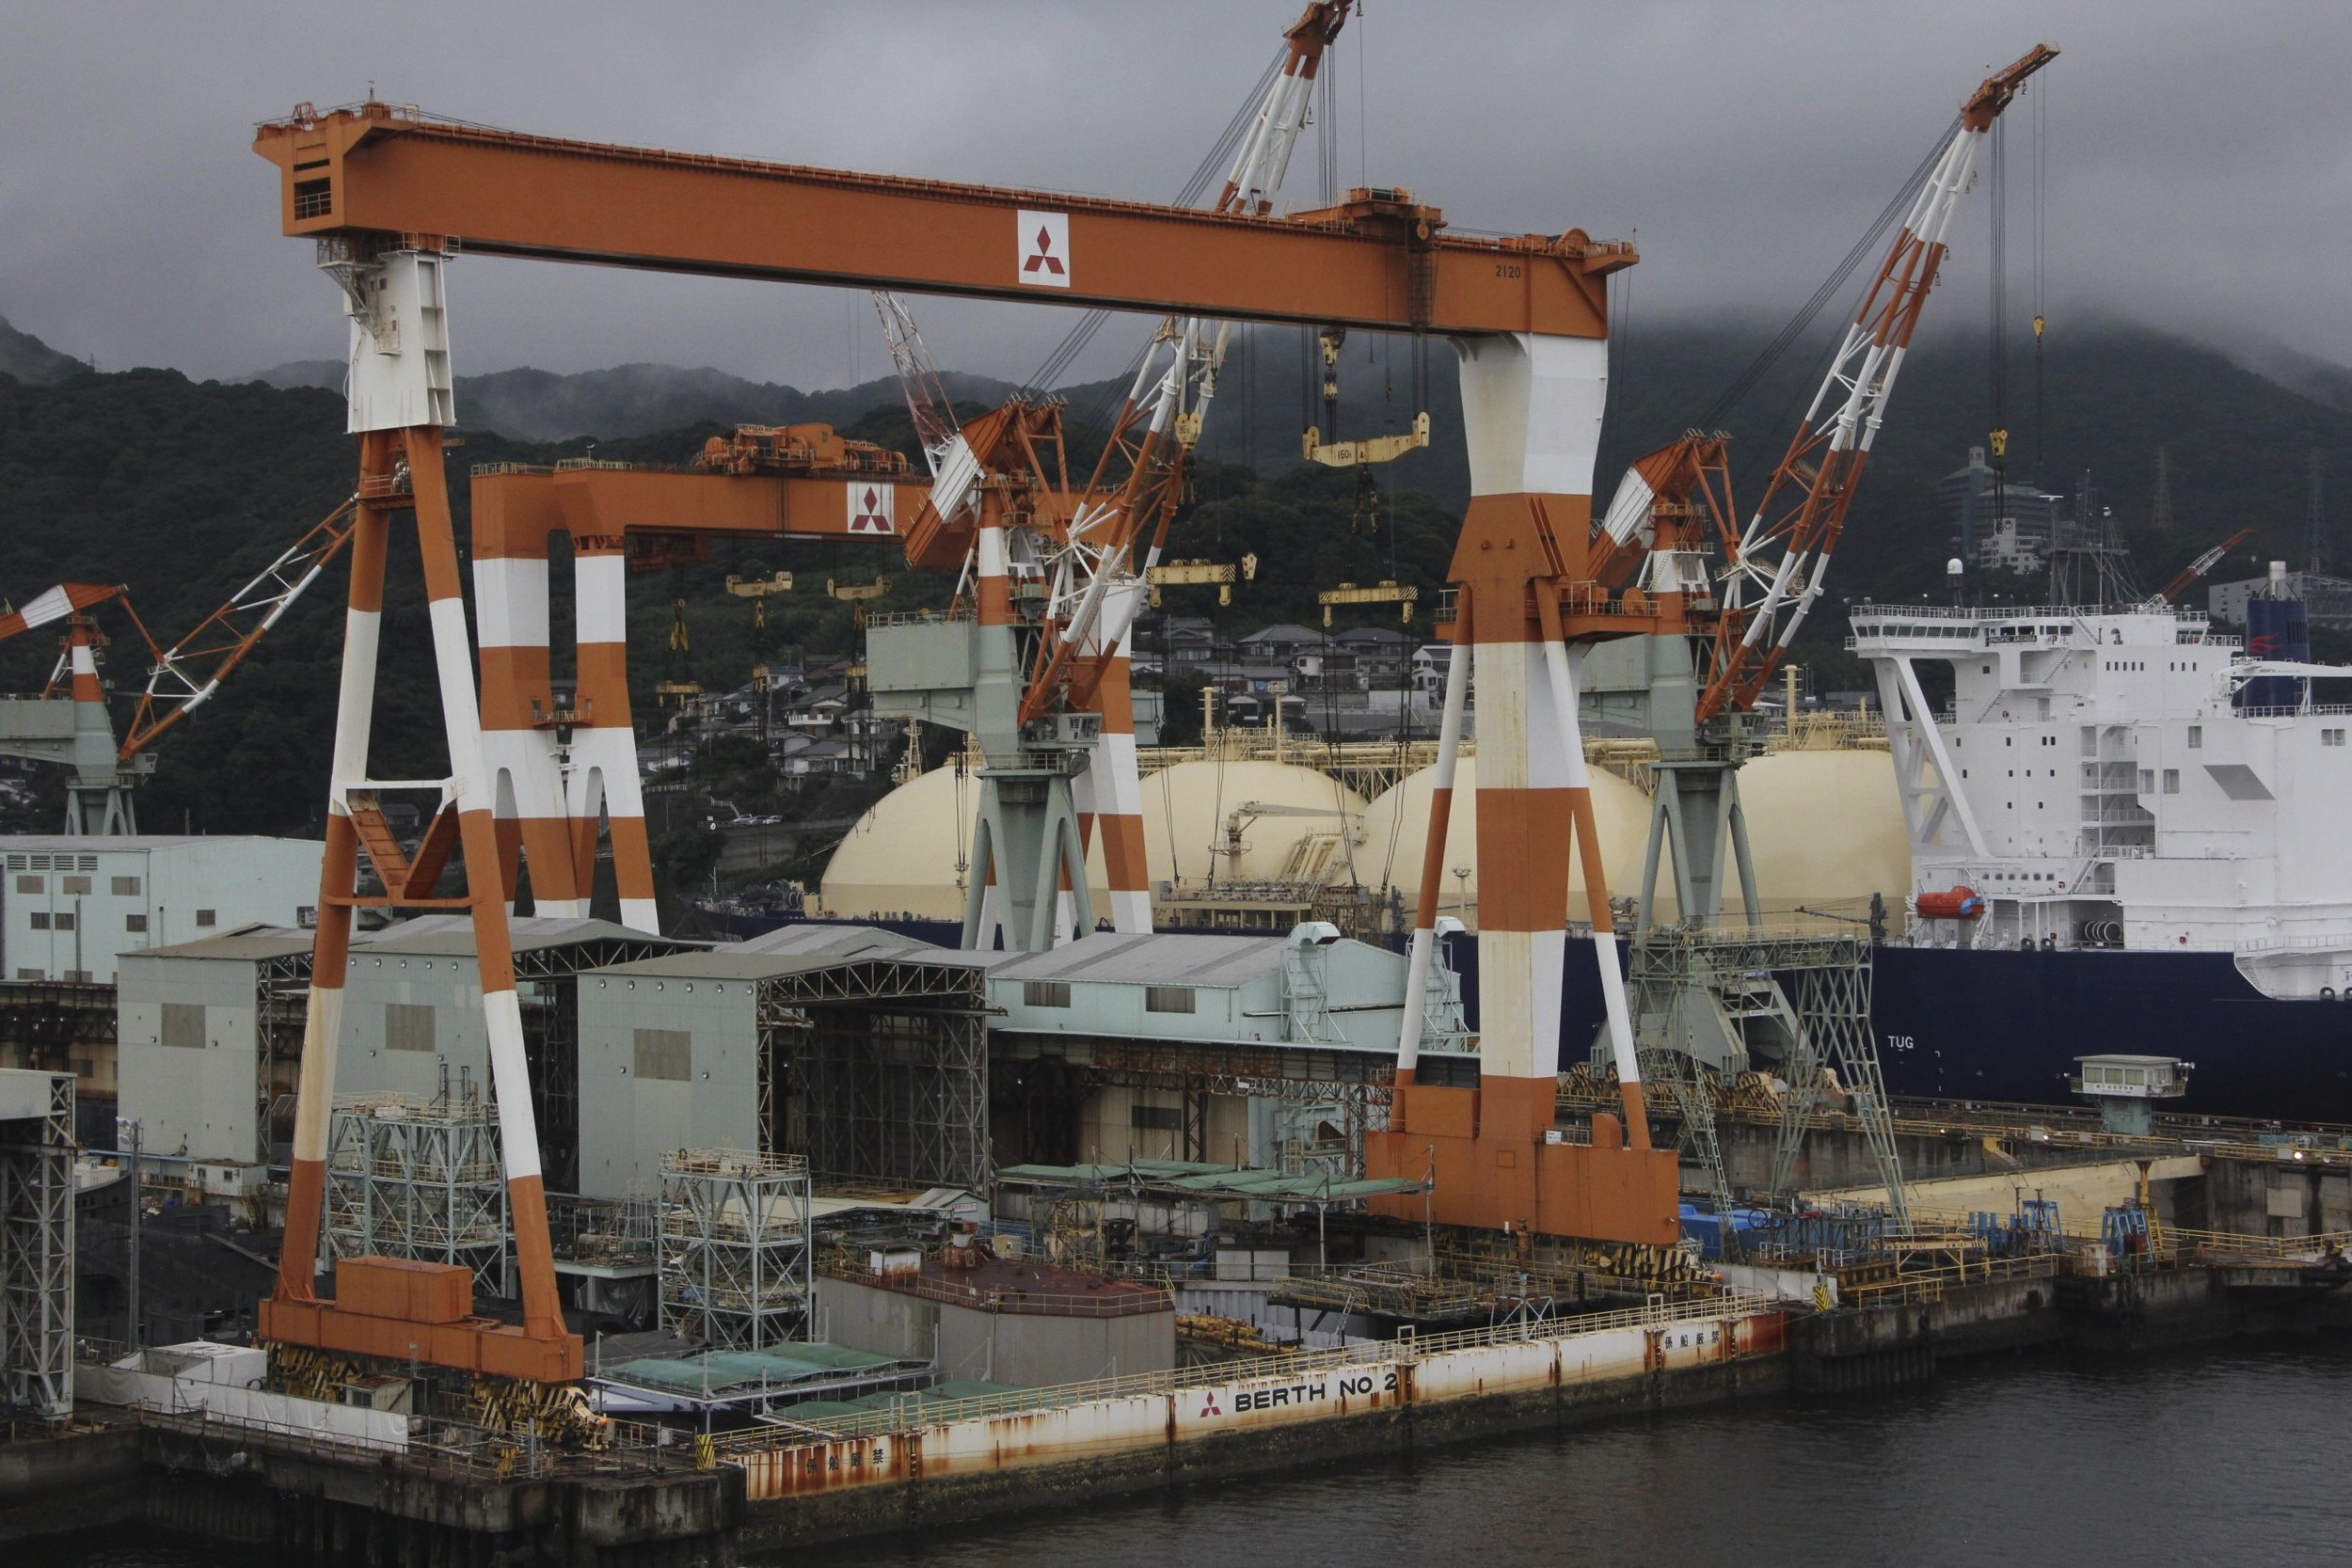 The Mitsubishi shipyard in Nagasaki.